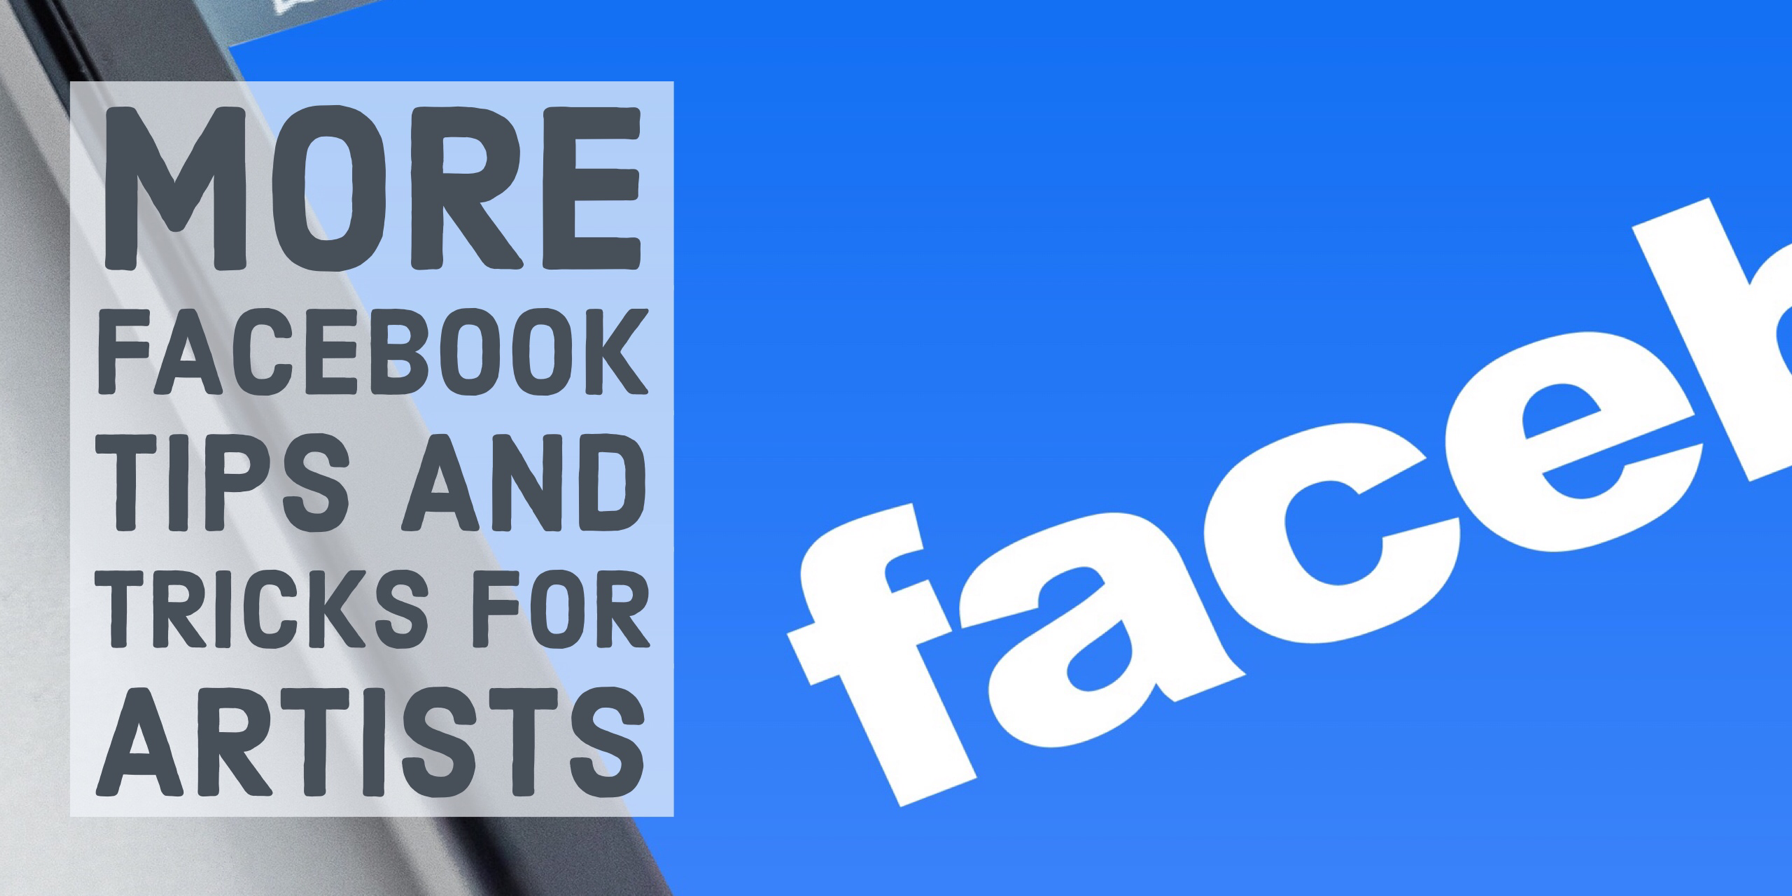 more Facebook tips and tricks for artists marketing art